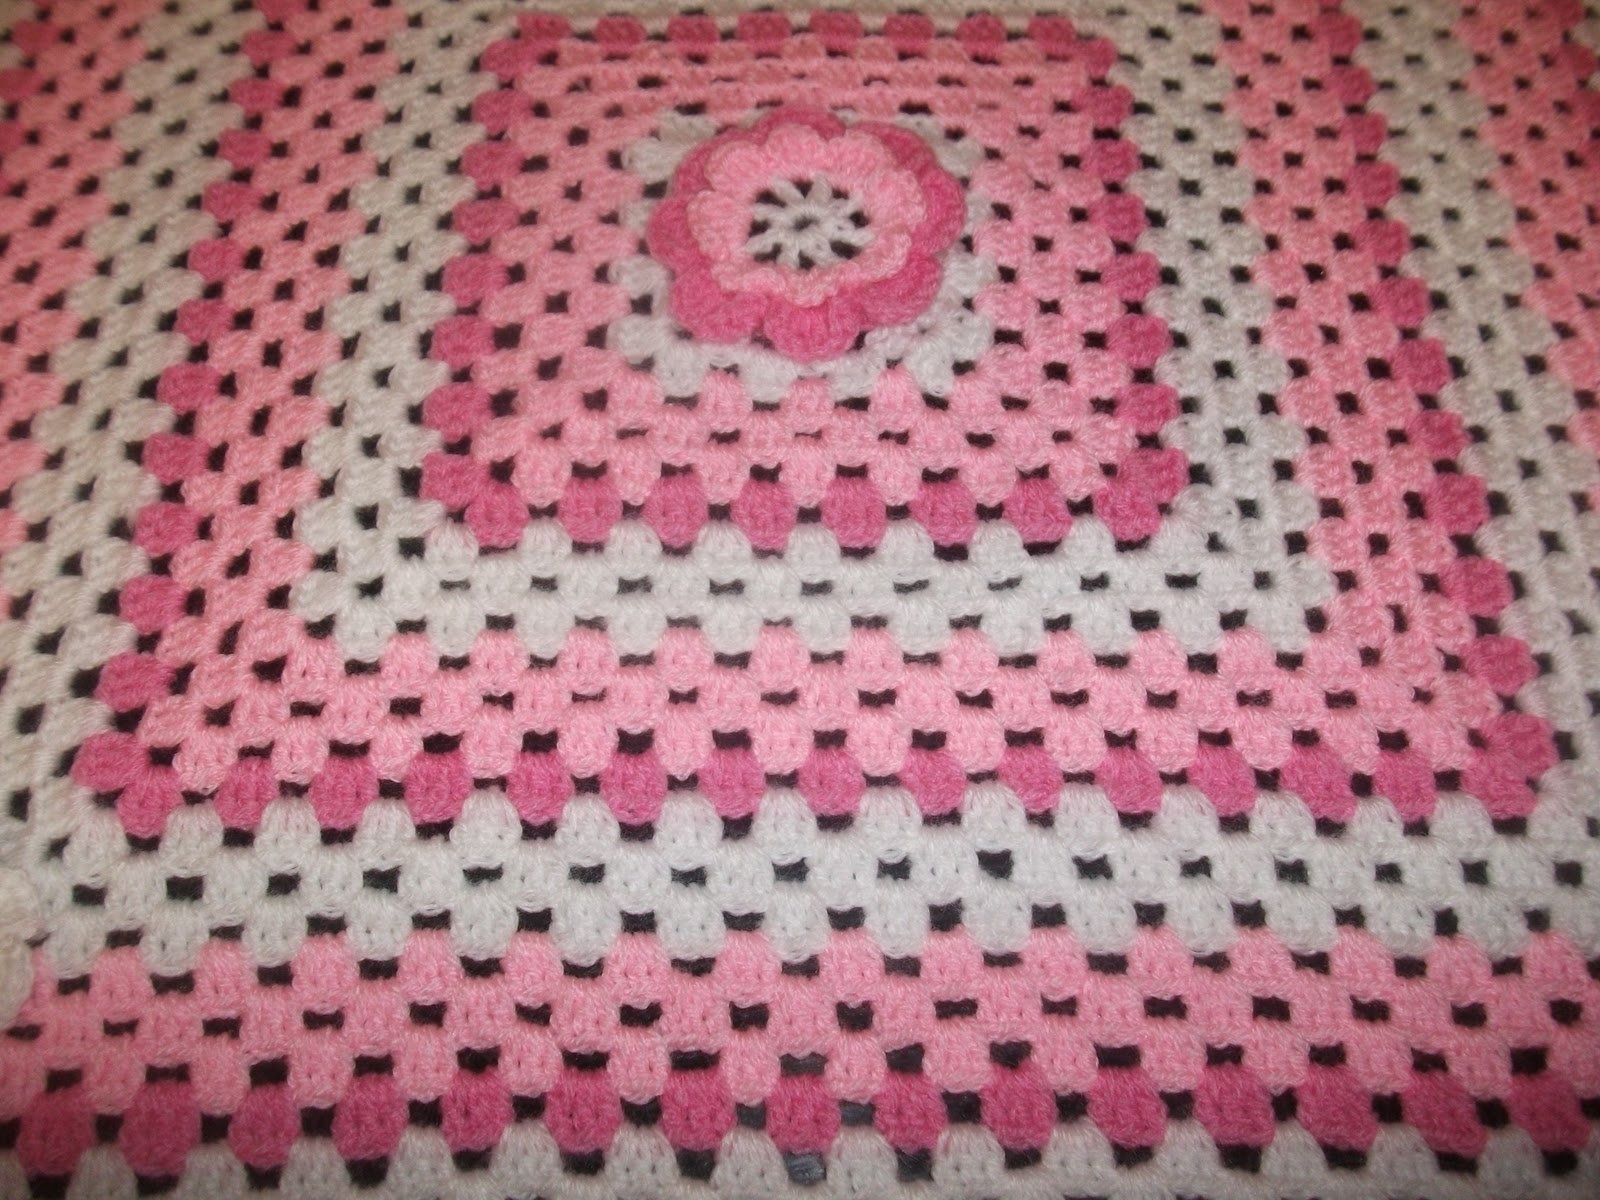 Crocheting A Baby Blanket For Beginners : Beginner Crochet Baby Blankets - Crochet Club